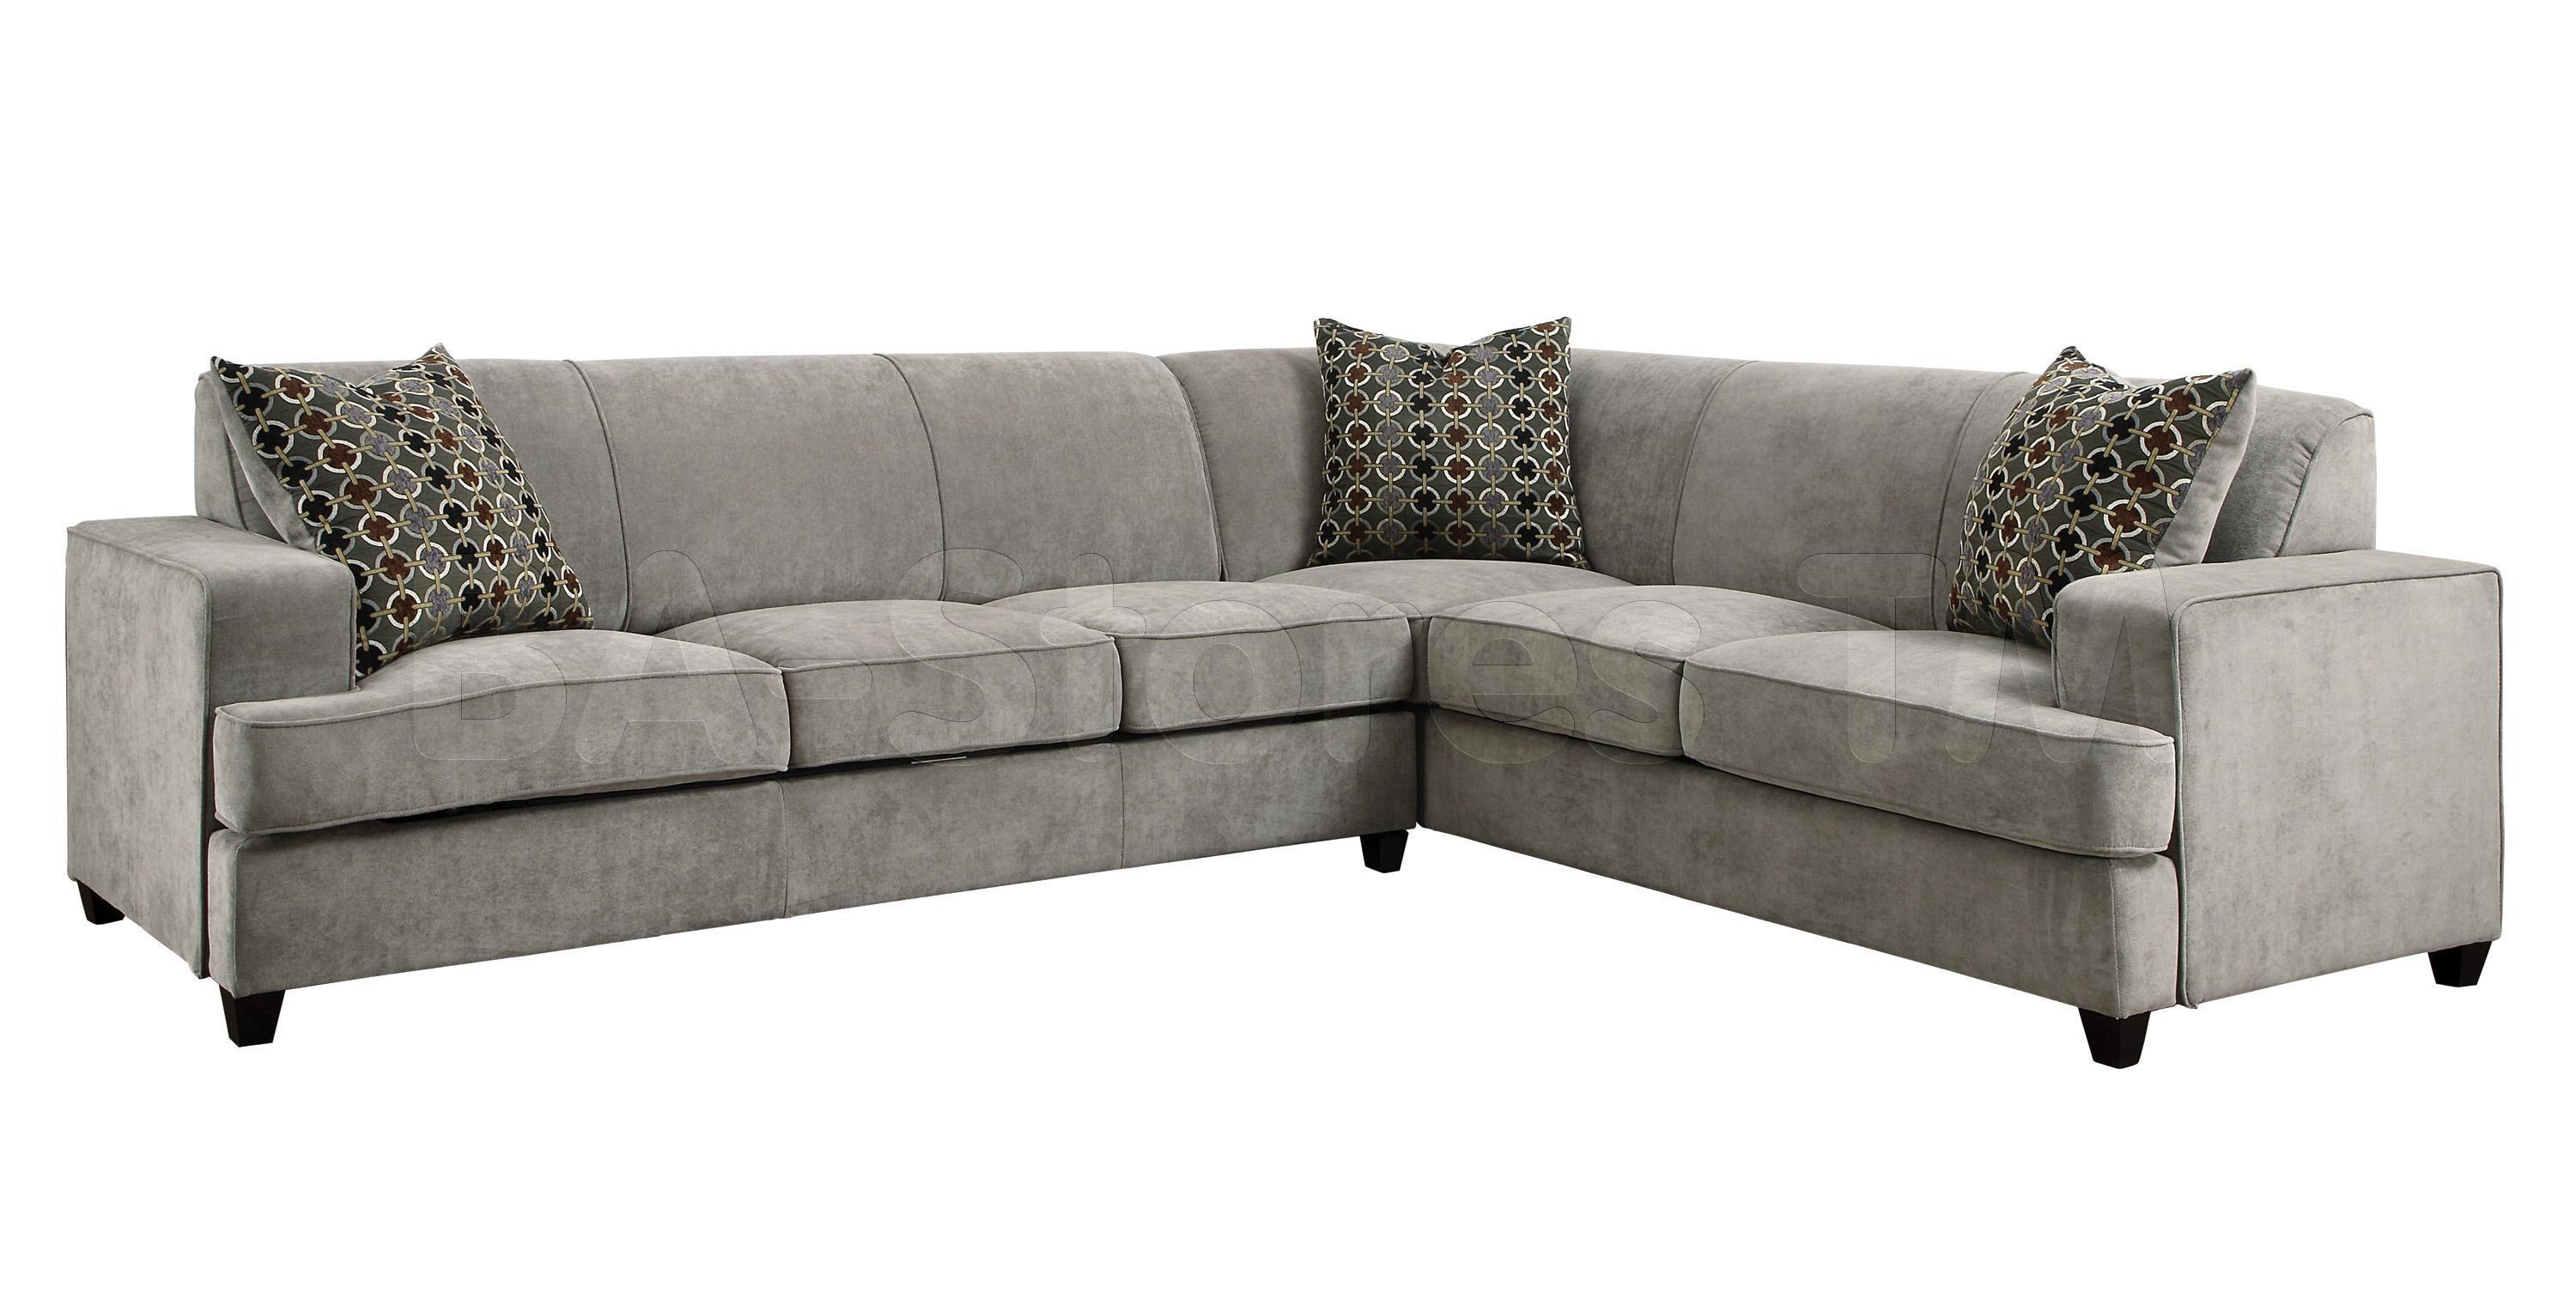 Furniture Home: Exceptionalcrofiber Sectional Sofa Image Concept Pertaining To Stacey Leather Sectional (View 14 of 20)